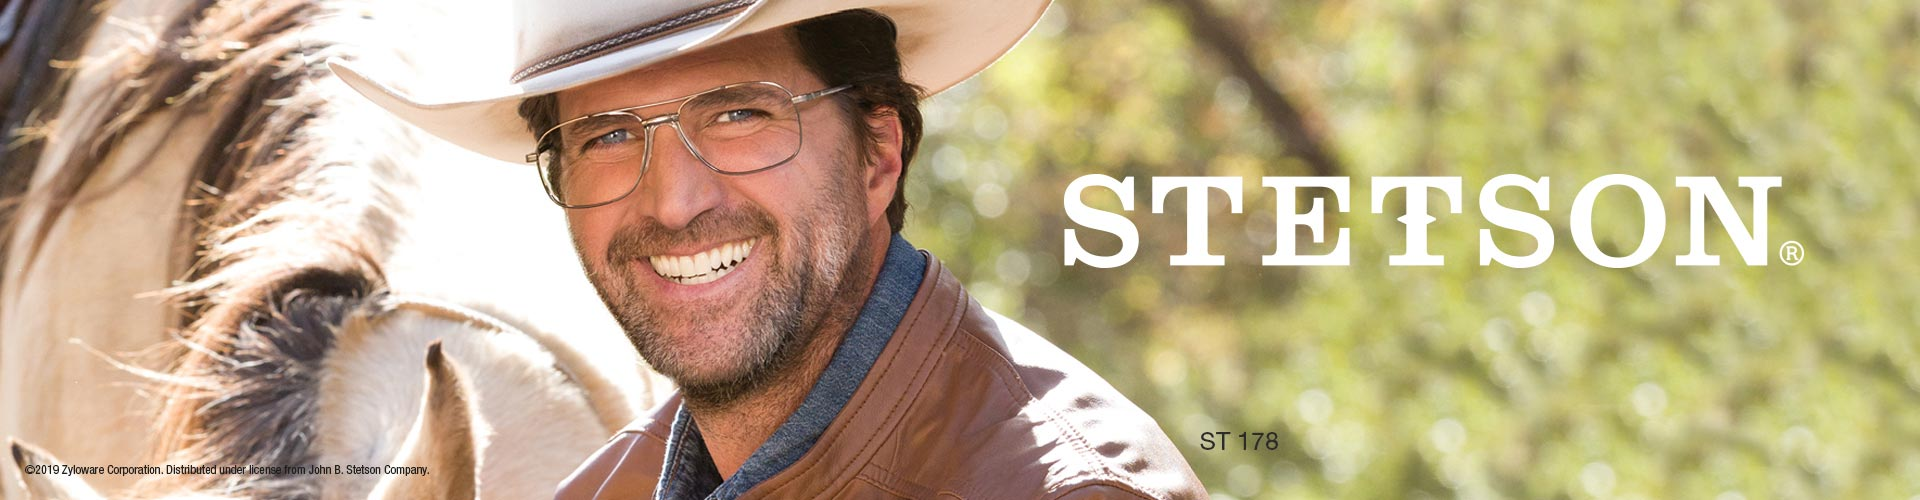 Shop Stetson Eyeglasses - model Stetson 178 featured